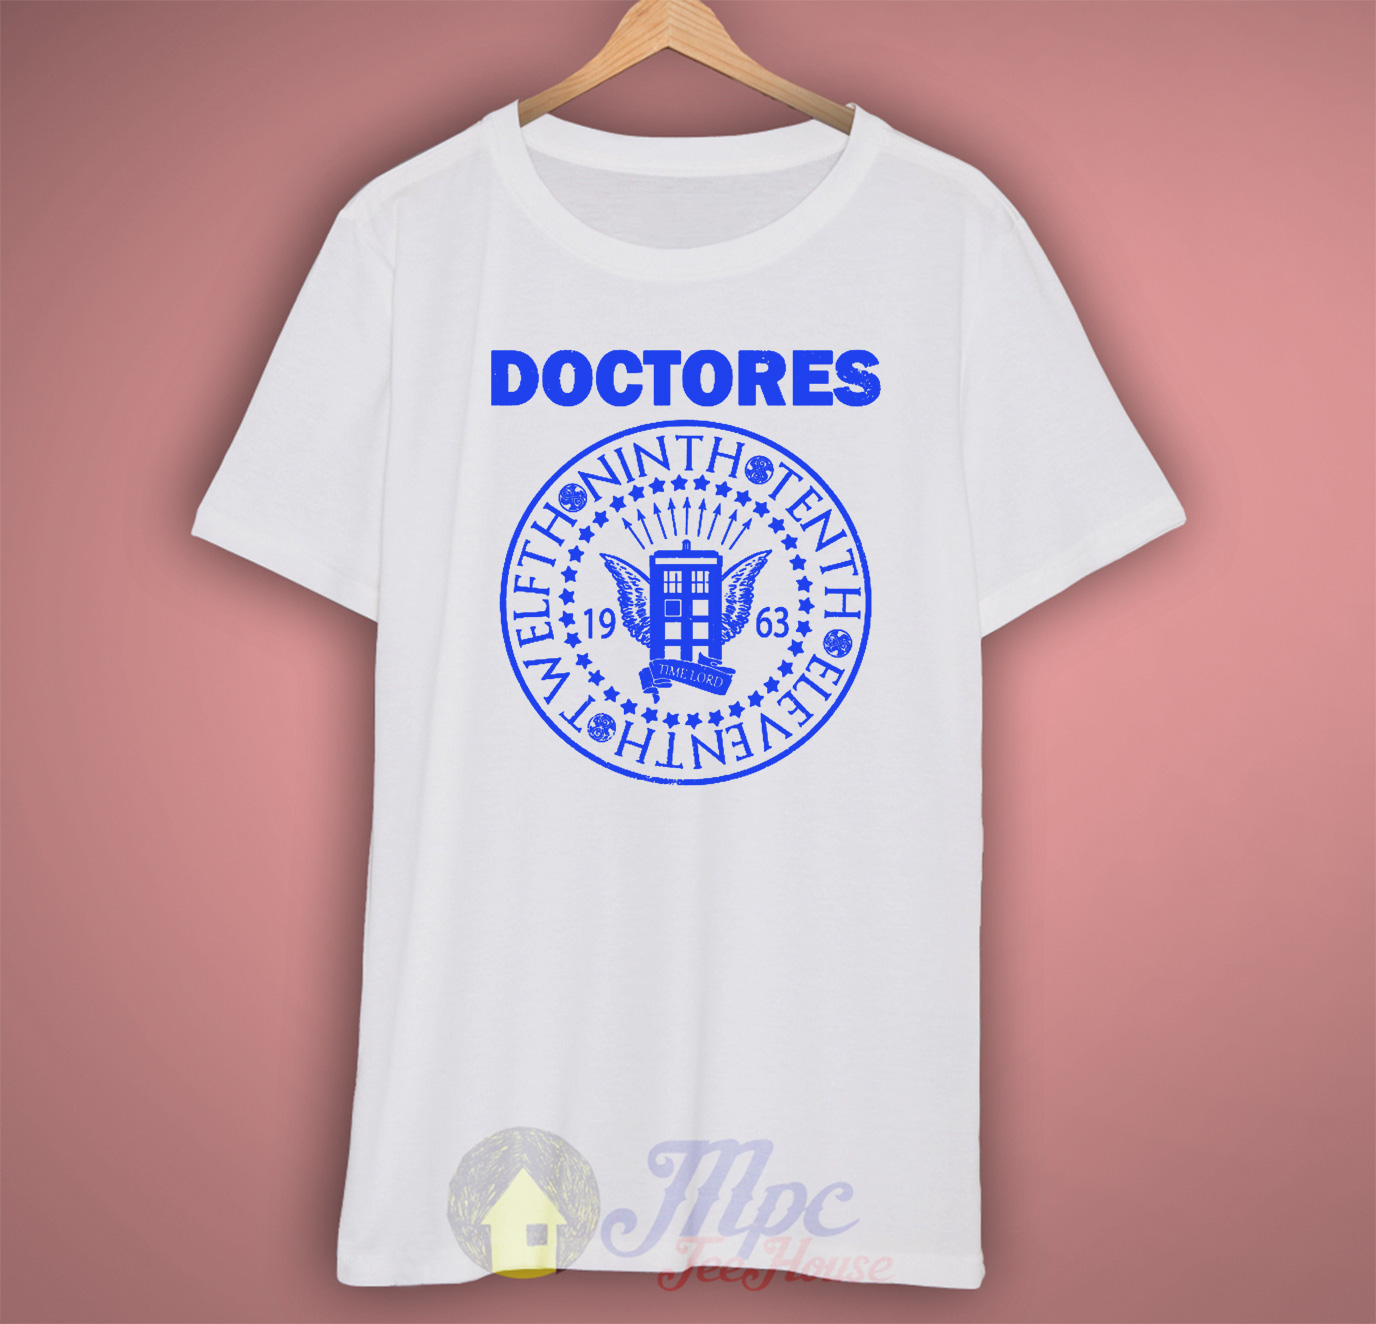 Doctor Who Doctores T Shirt